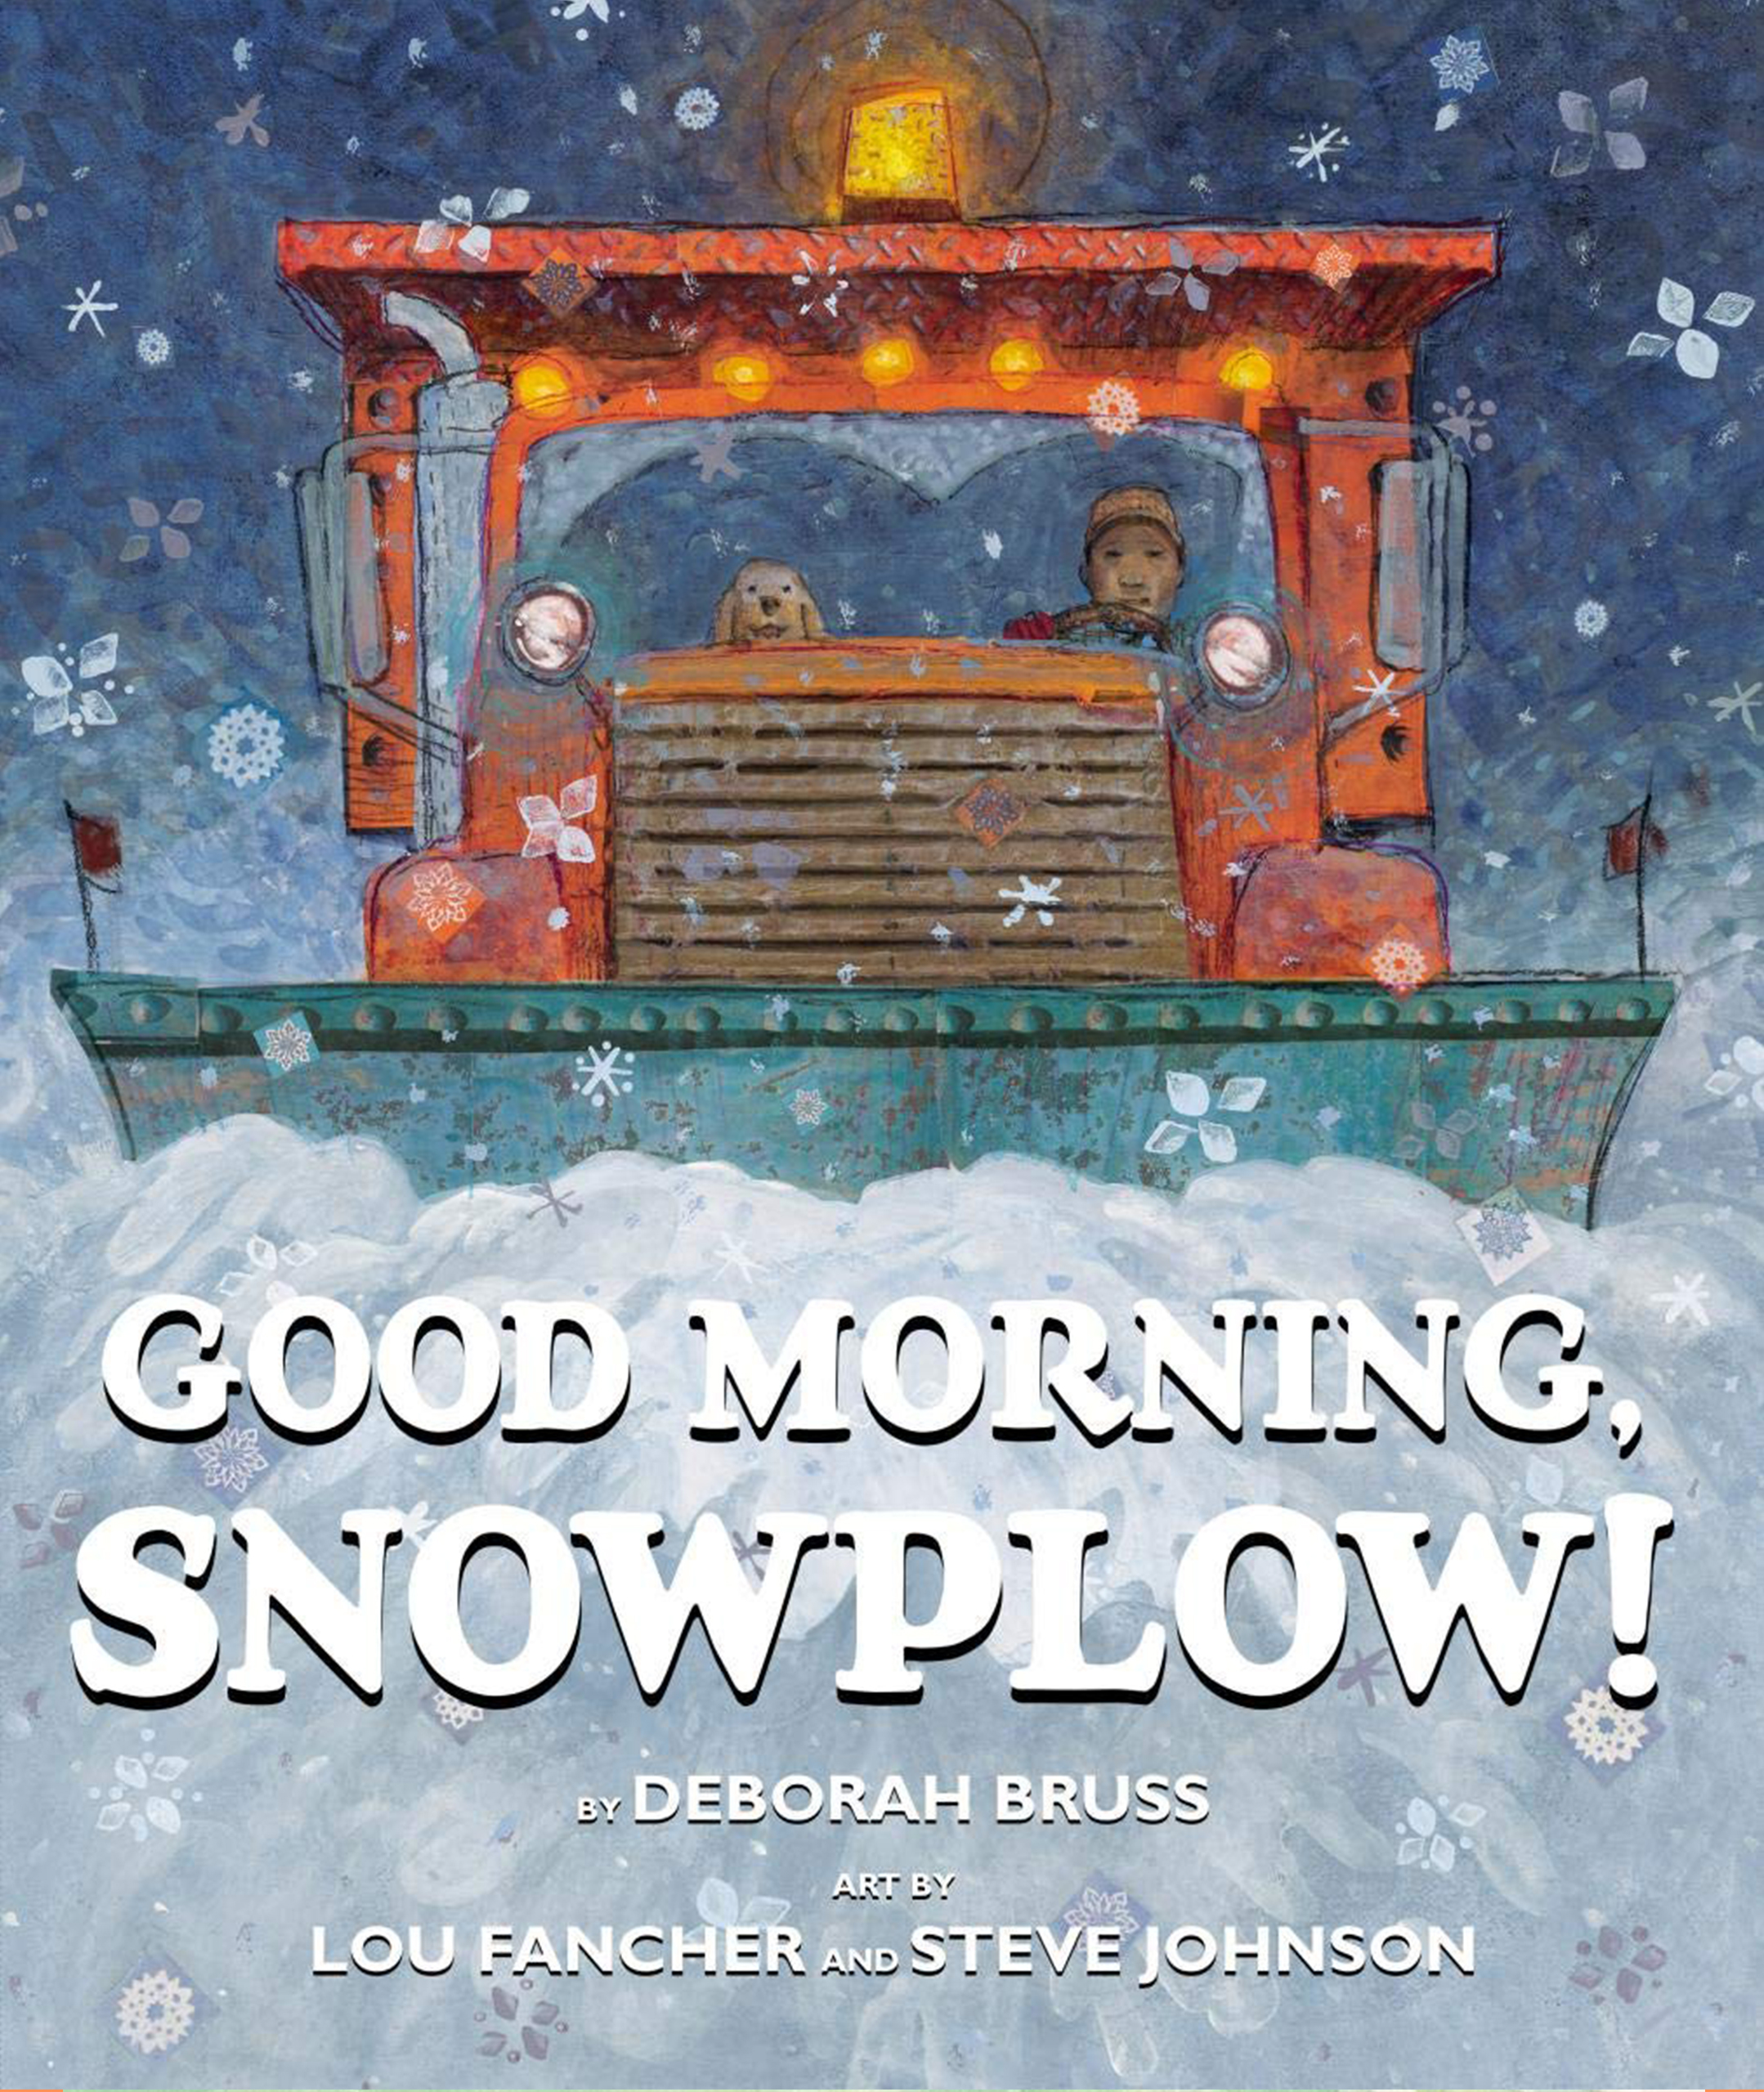 Good Morning Snow Plow! by Deborah Bruss